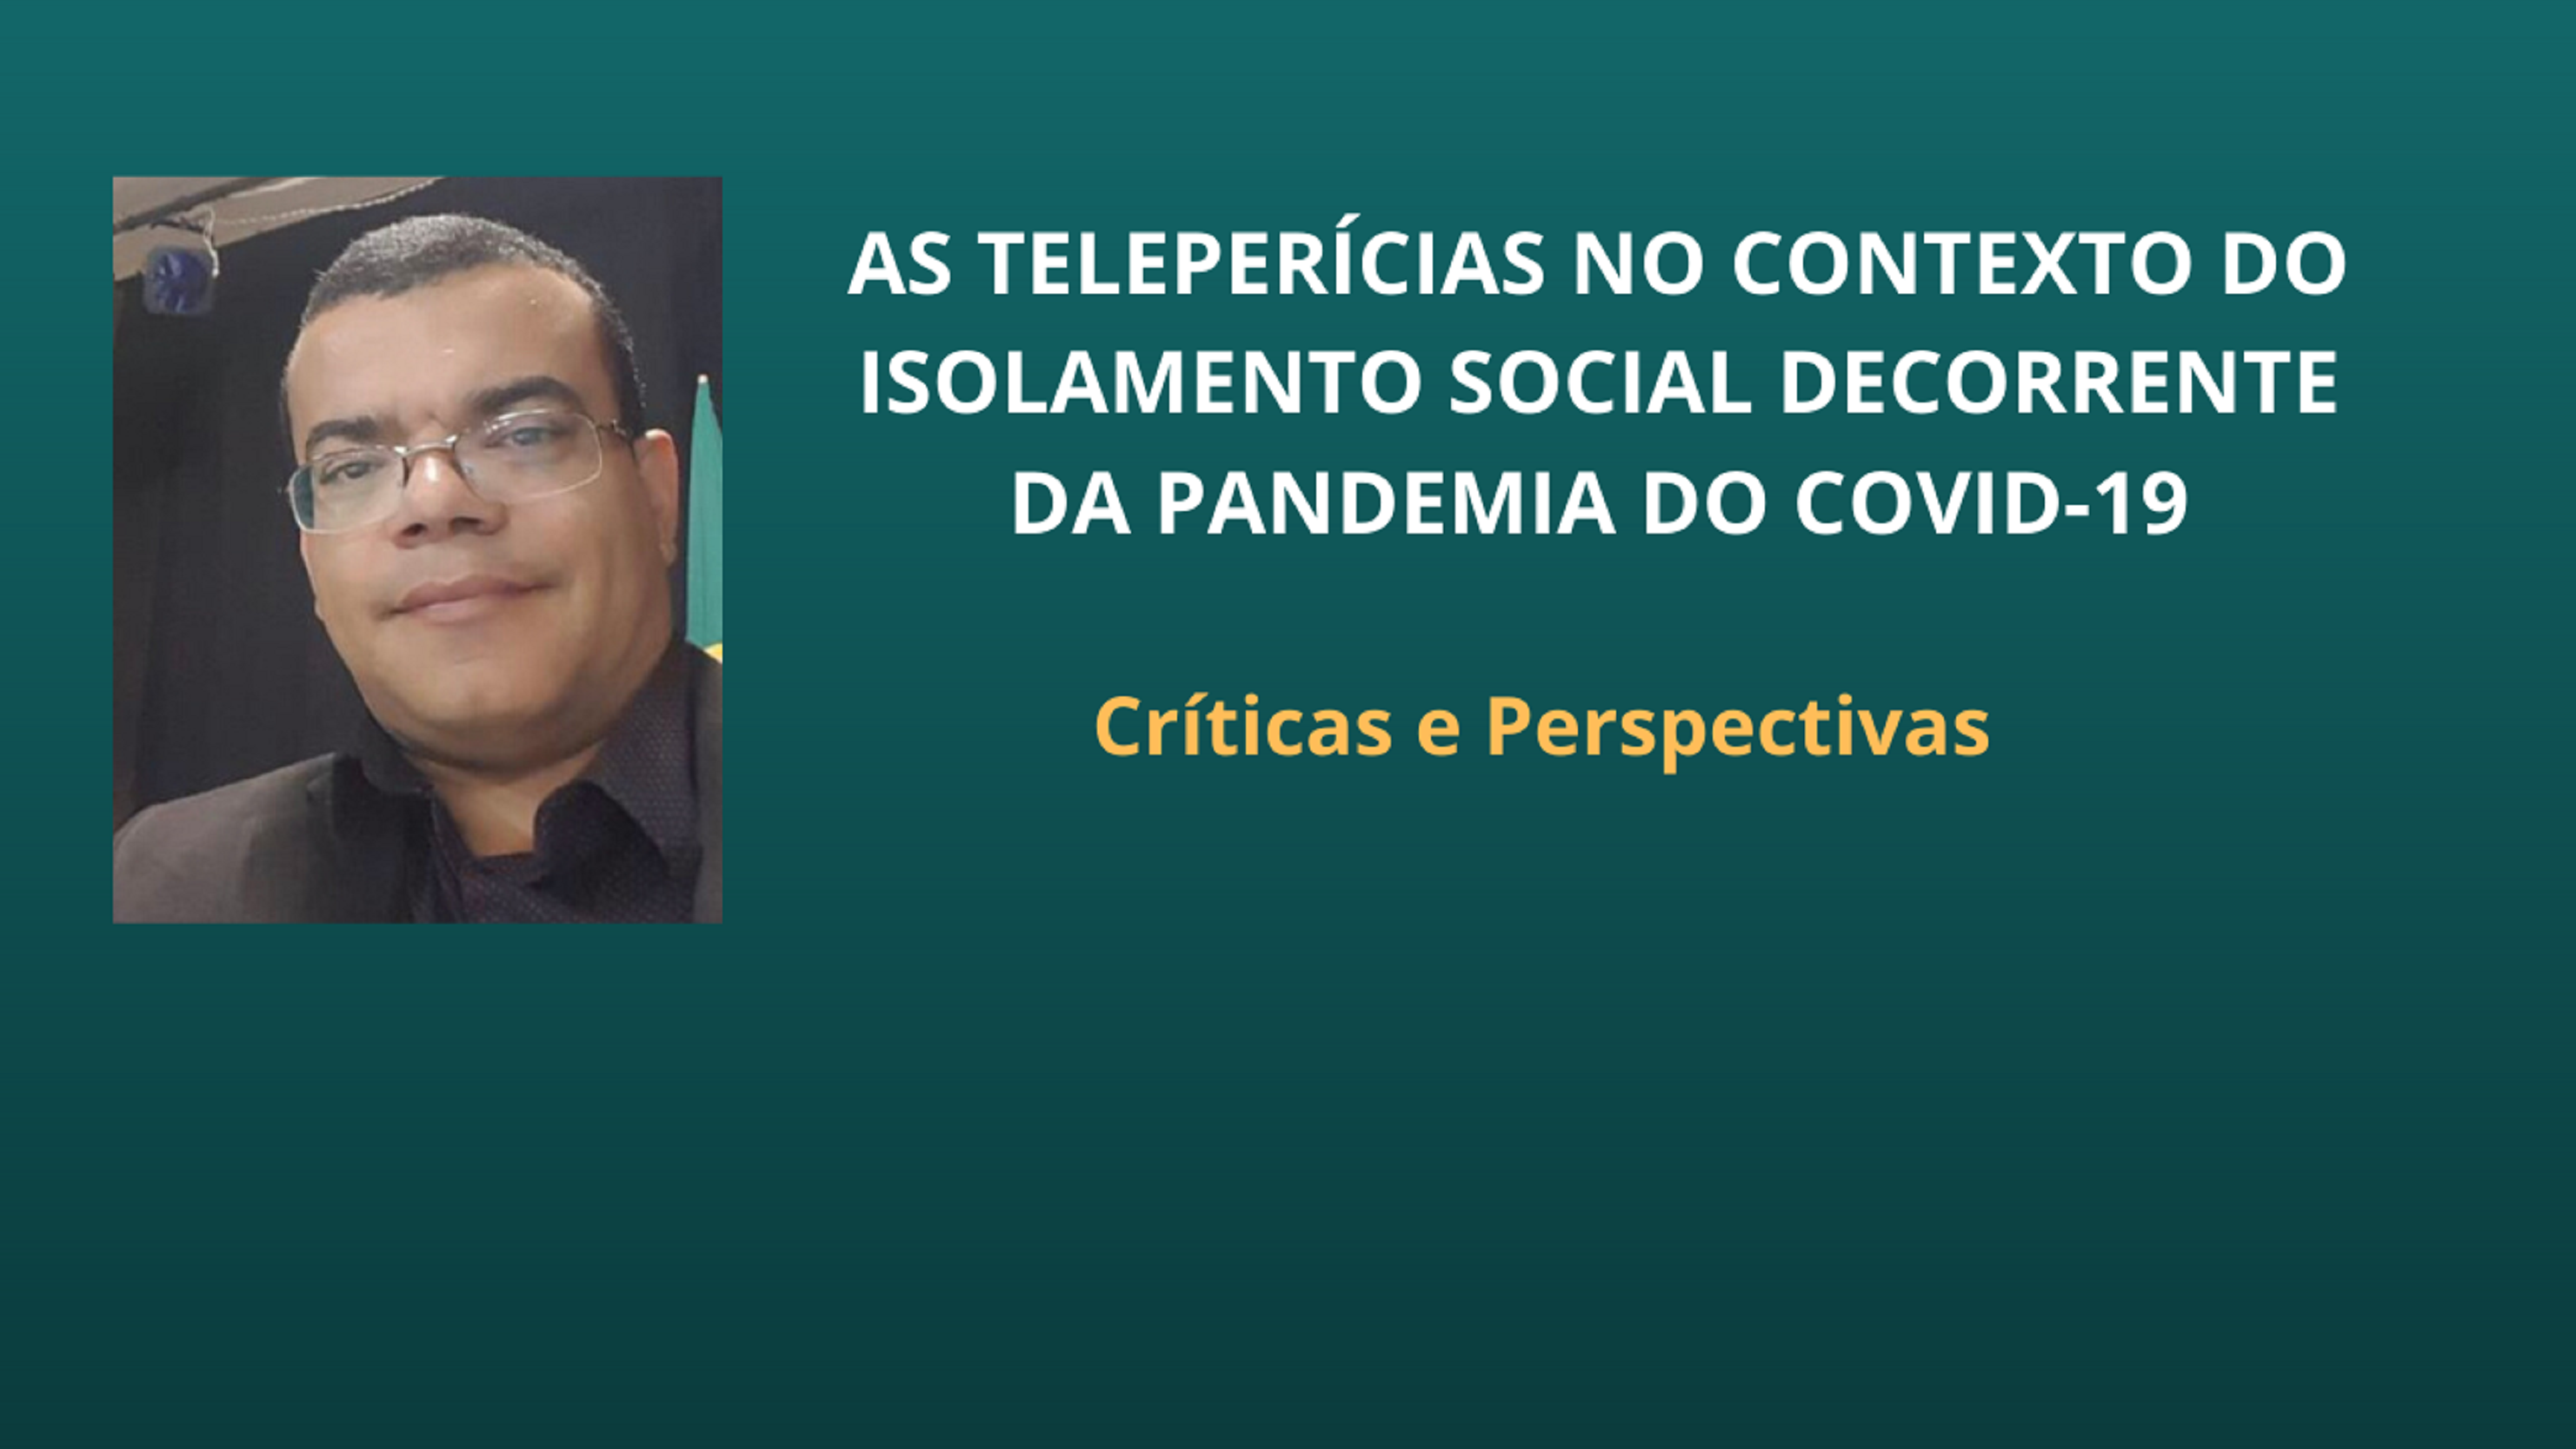 As teleperícias no contexto do isolamento social decorrente da pandemia do covid-19: críticas e perspectivas